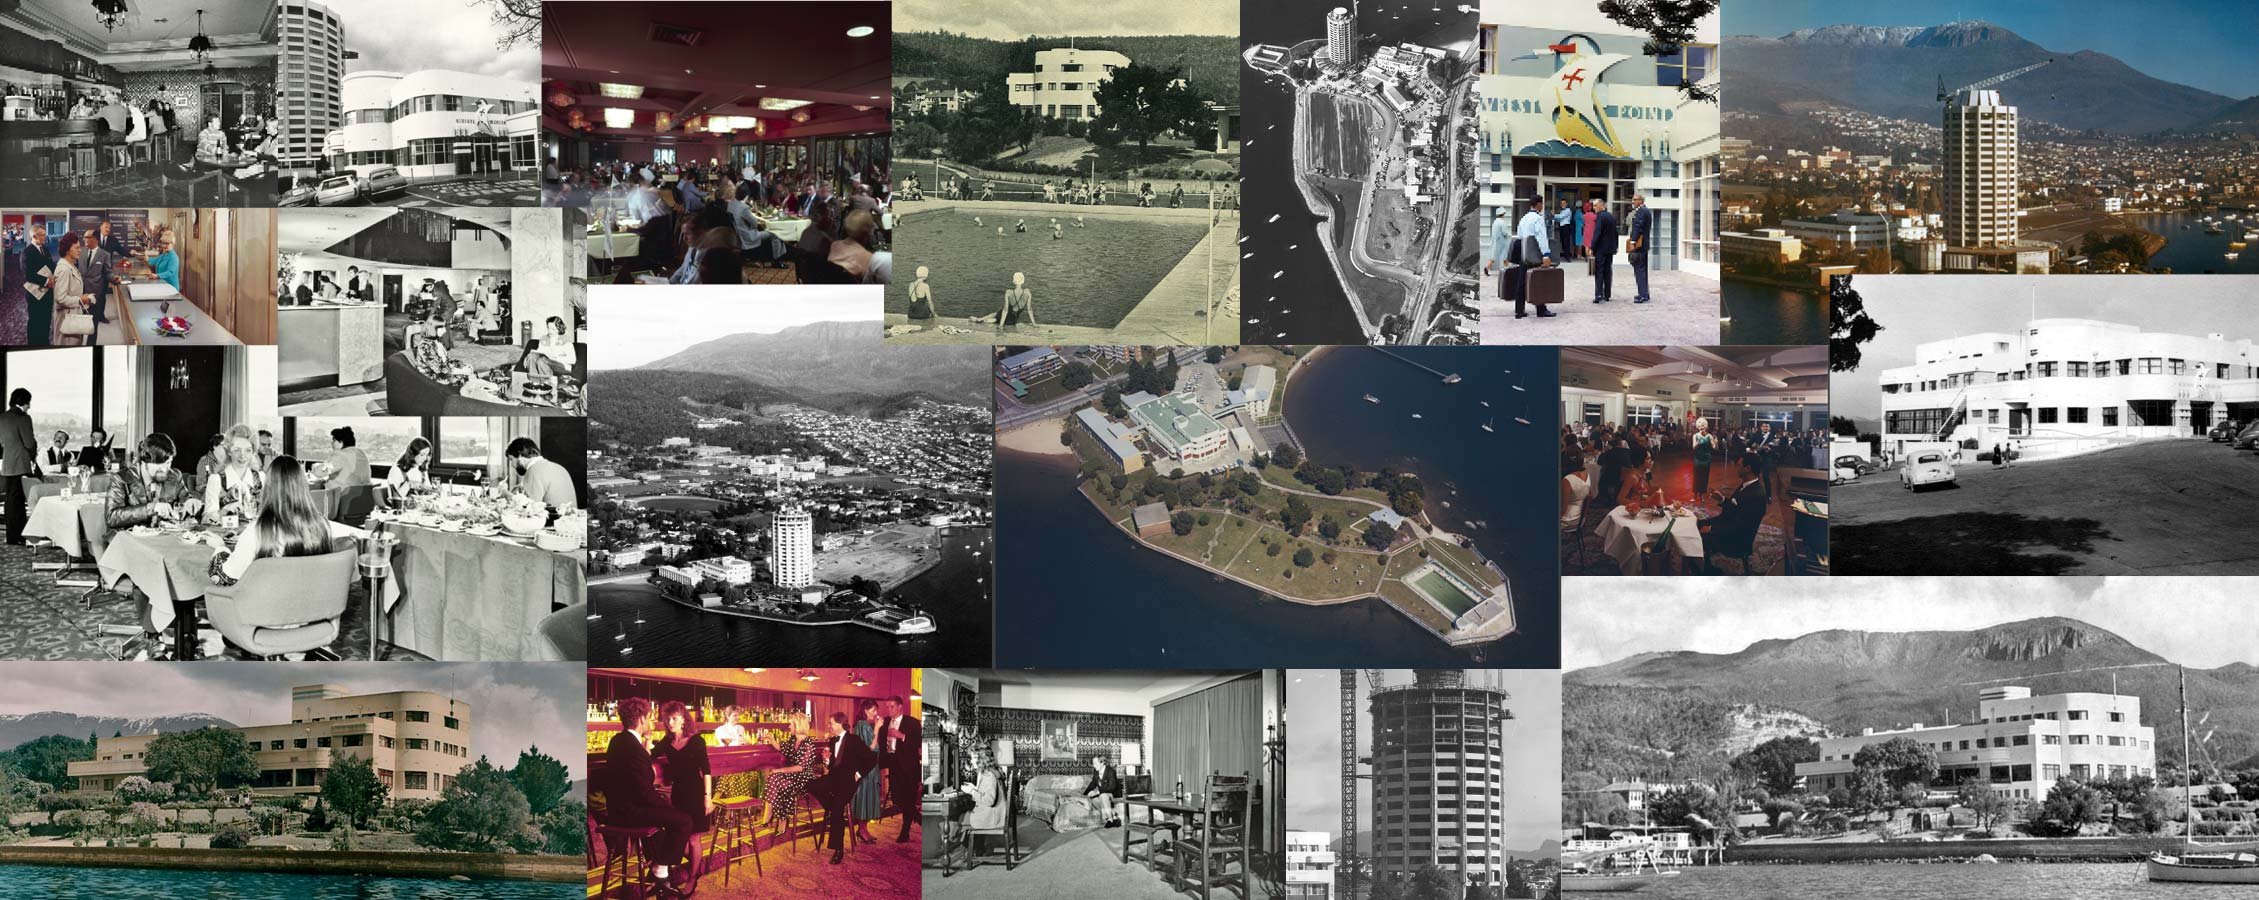 Celebrating 80 Years Of The Wrest Point Riviera